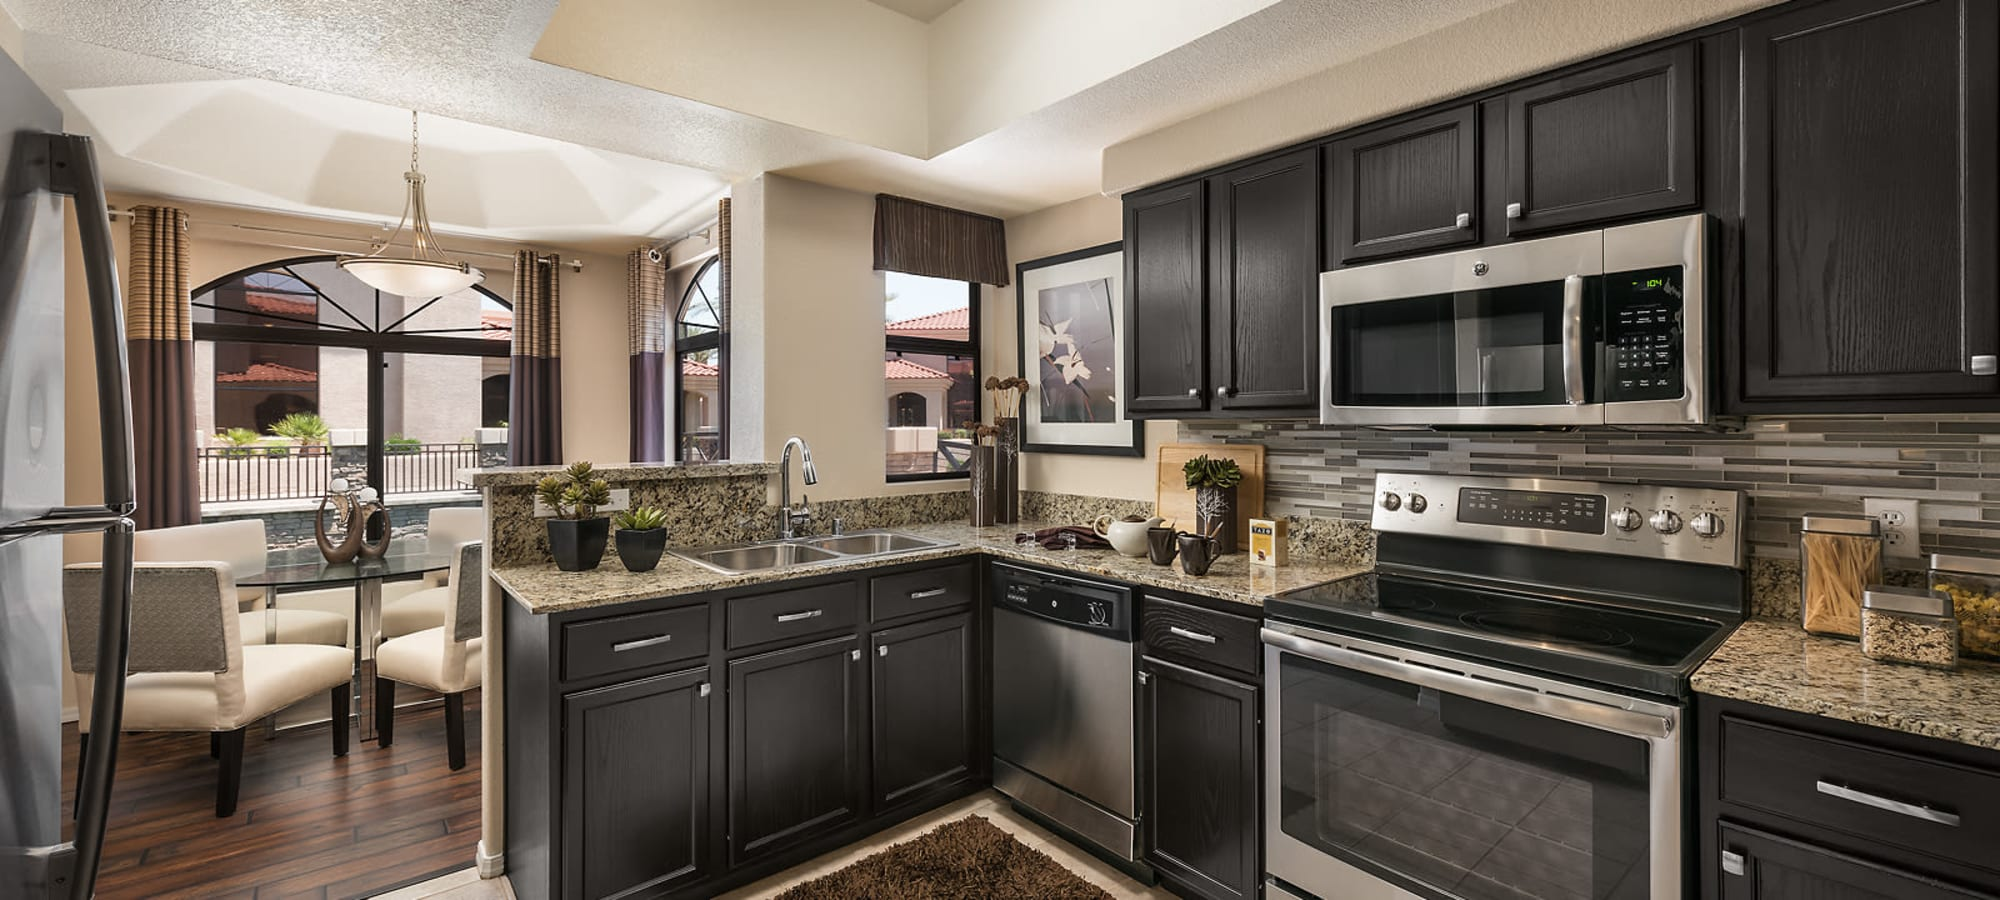 Spacious kitchen with granite counter tops at San Lagos in Glendale, Arizona